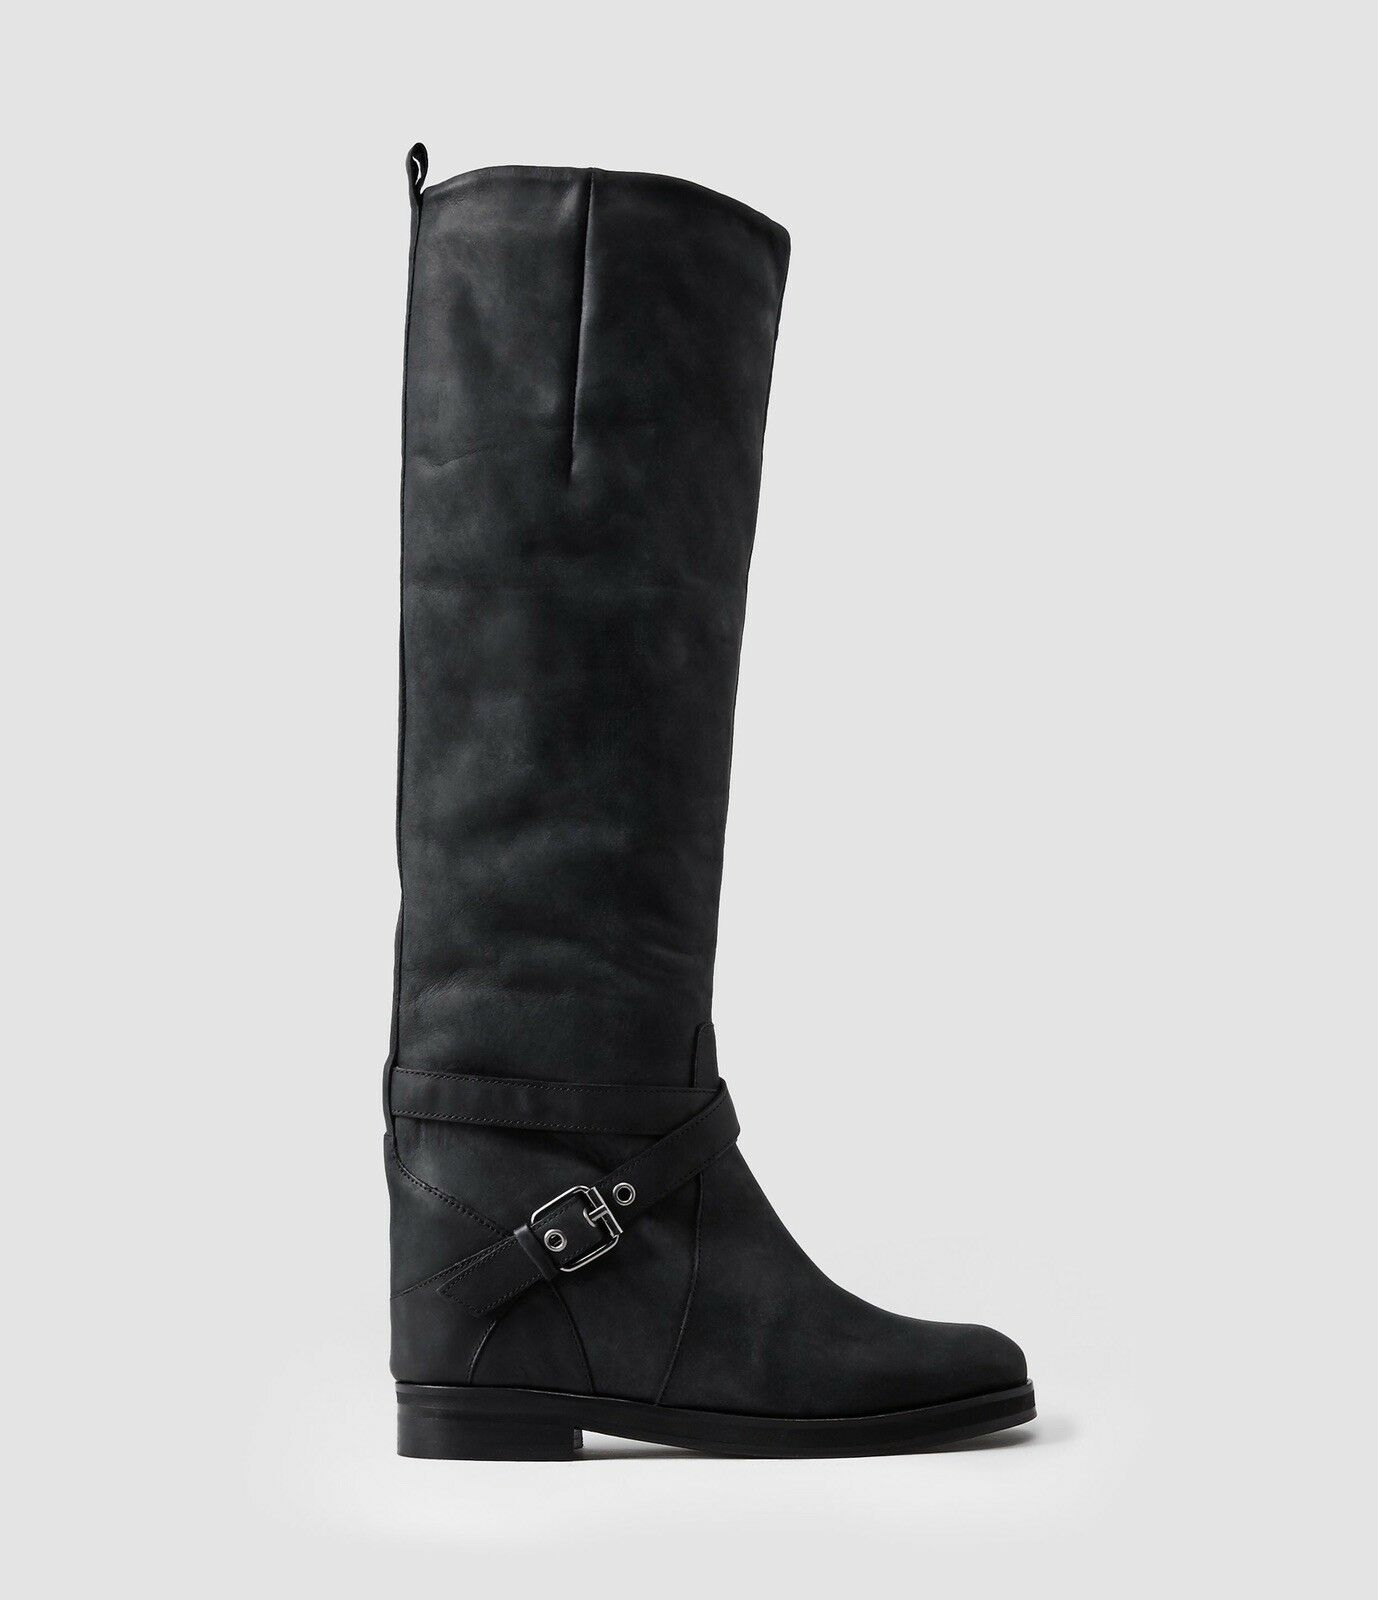 damen's Knee High AllSaints Stiefel